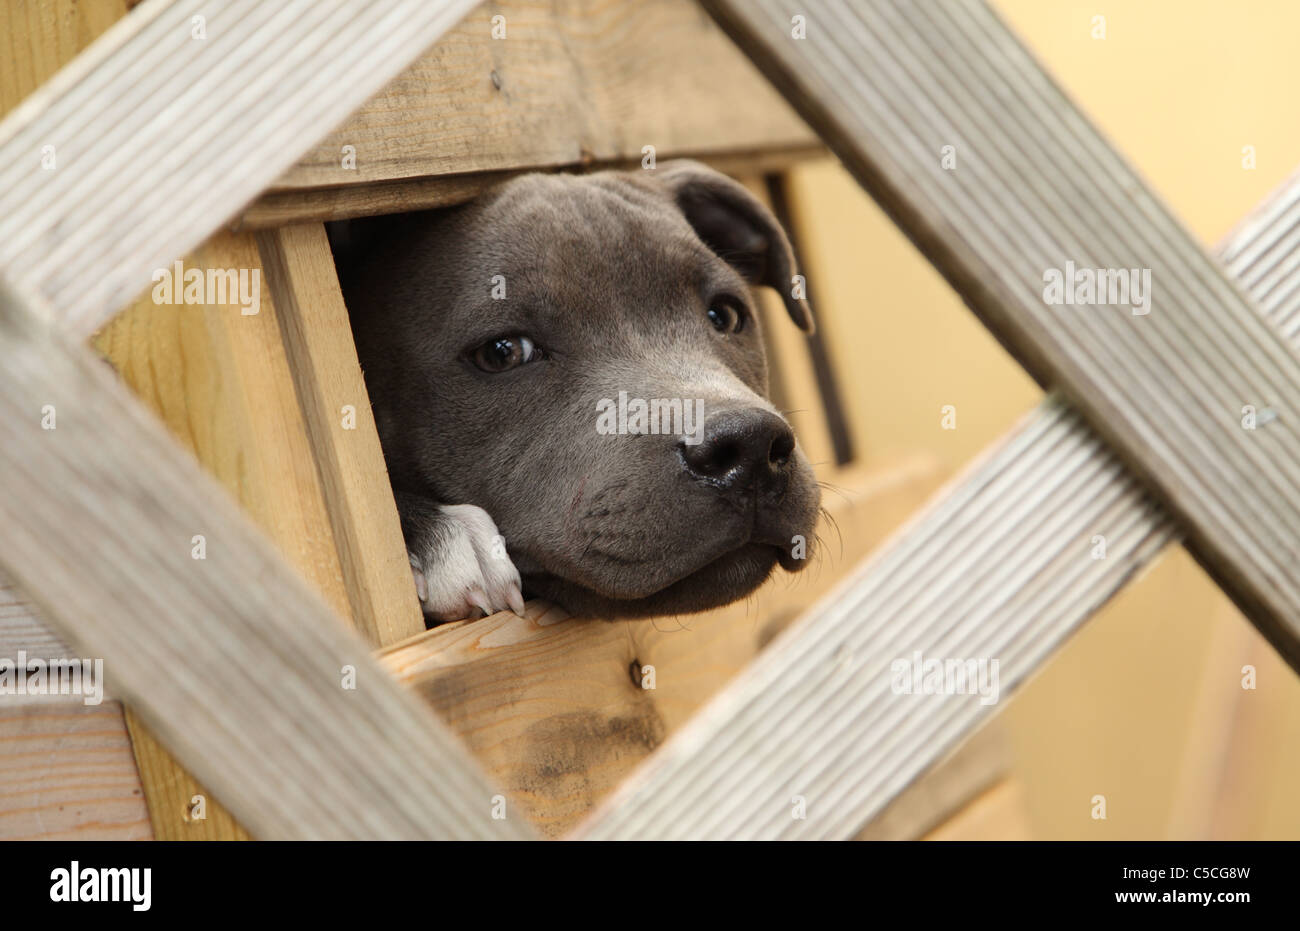 Young Staffordshire Bull Terrier looking through a hole in a box - Stock Image